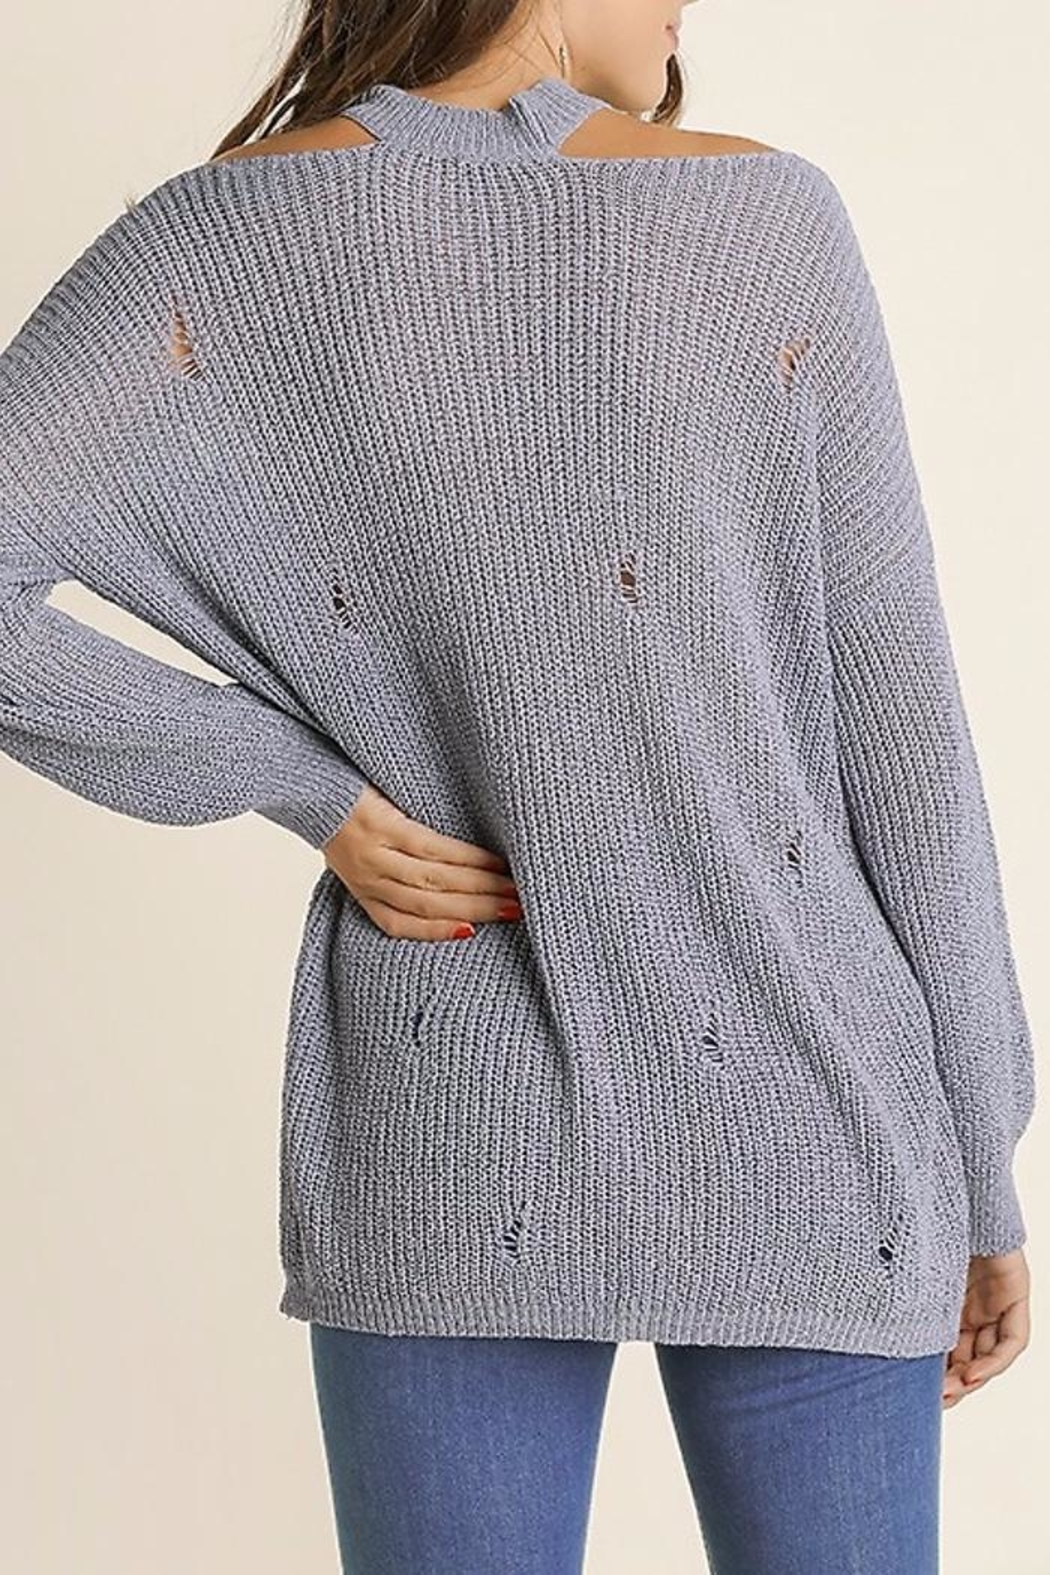 People Outfitter Vintage Knit Sweater - Side Cropped Image